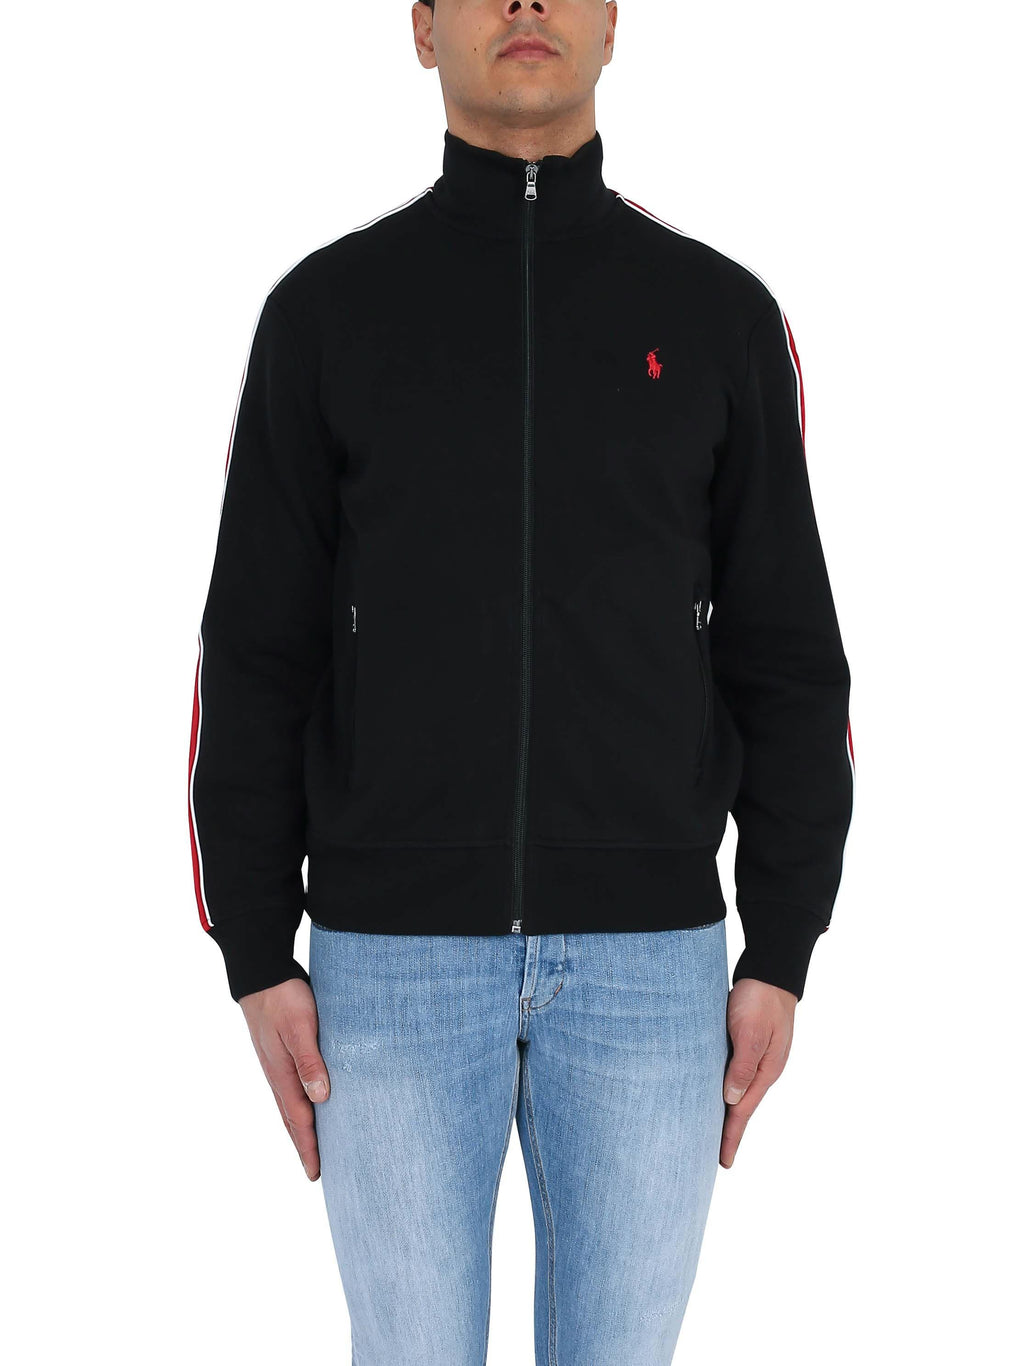 RALPH LAUREN Sweatshirt with side bands and embroidered logo